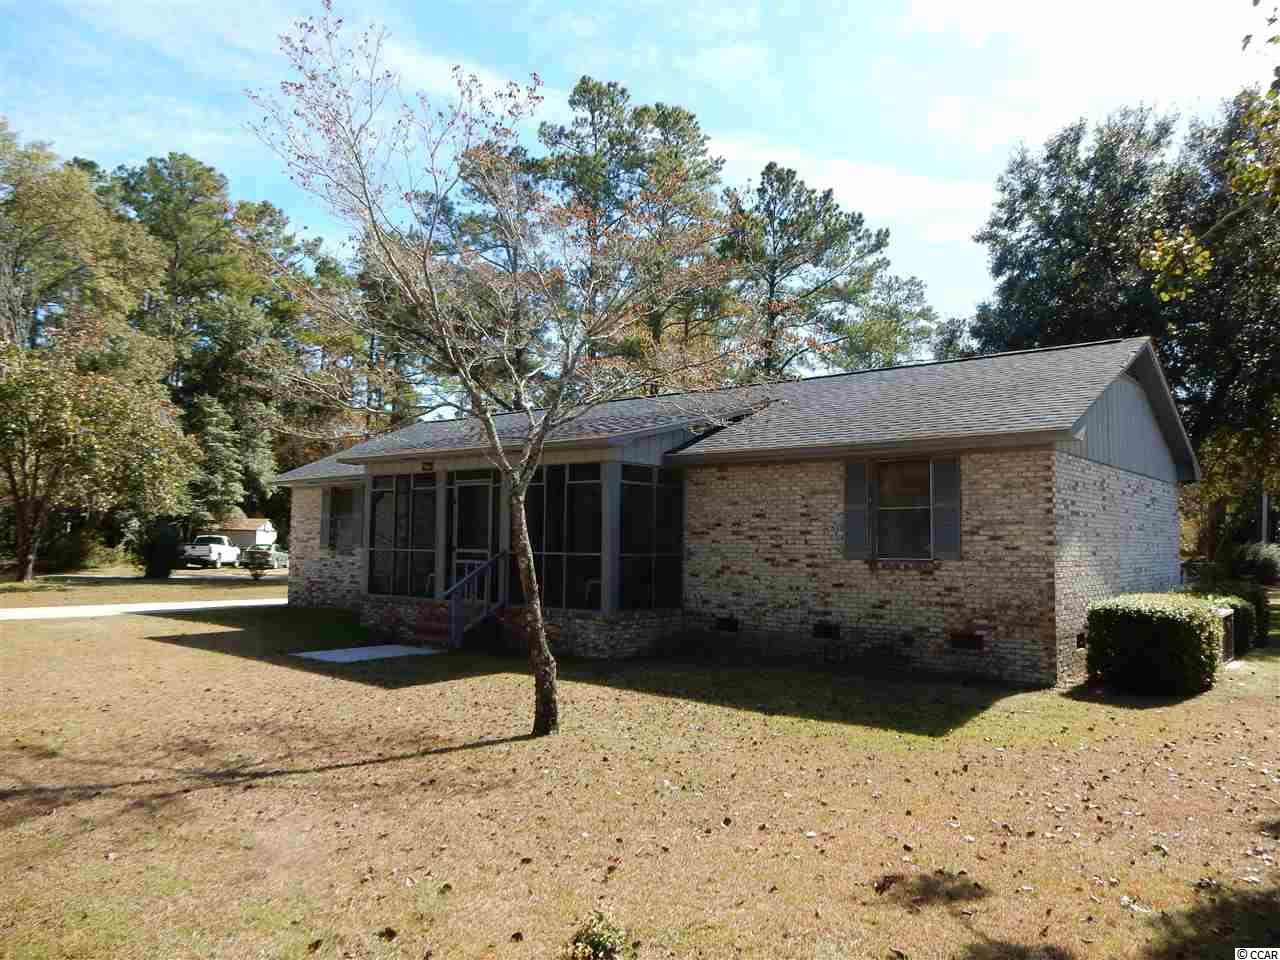 Home is all brick with carport and storage room. Large lot, plenty of parking. Corner lot. 3 bedrooms 2 bath. Discover the hidden treasures of Downtown Conway . Located just 15 miles from Myrtle Beach. Conway is filled with history and charm. Square footage & dimensions are approximate & should be verified by buyer.